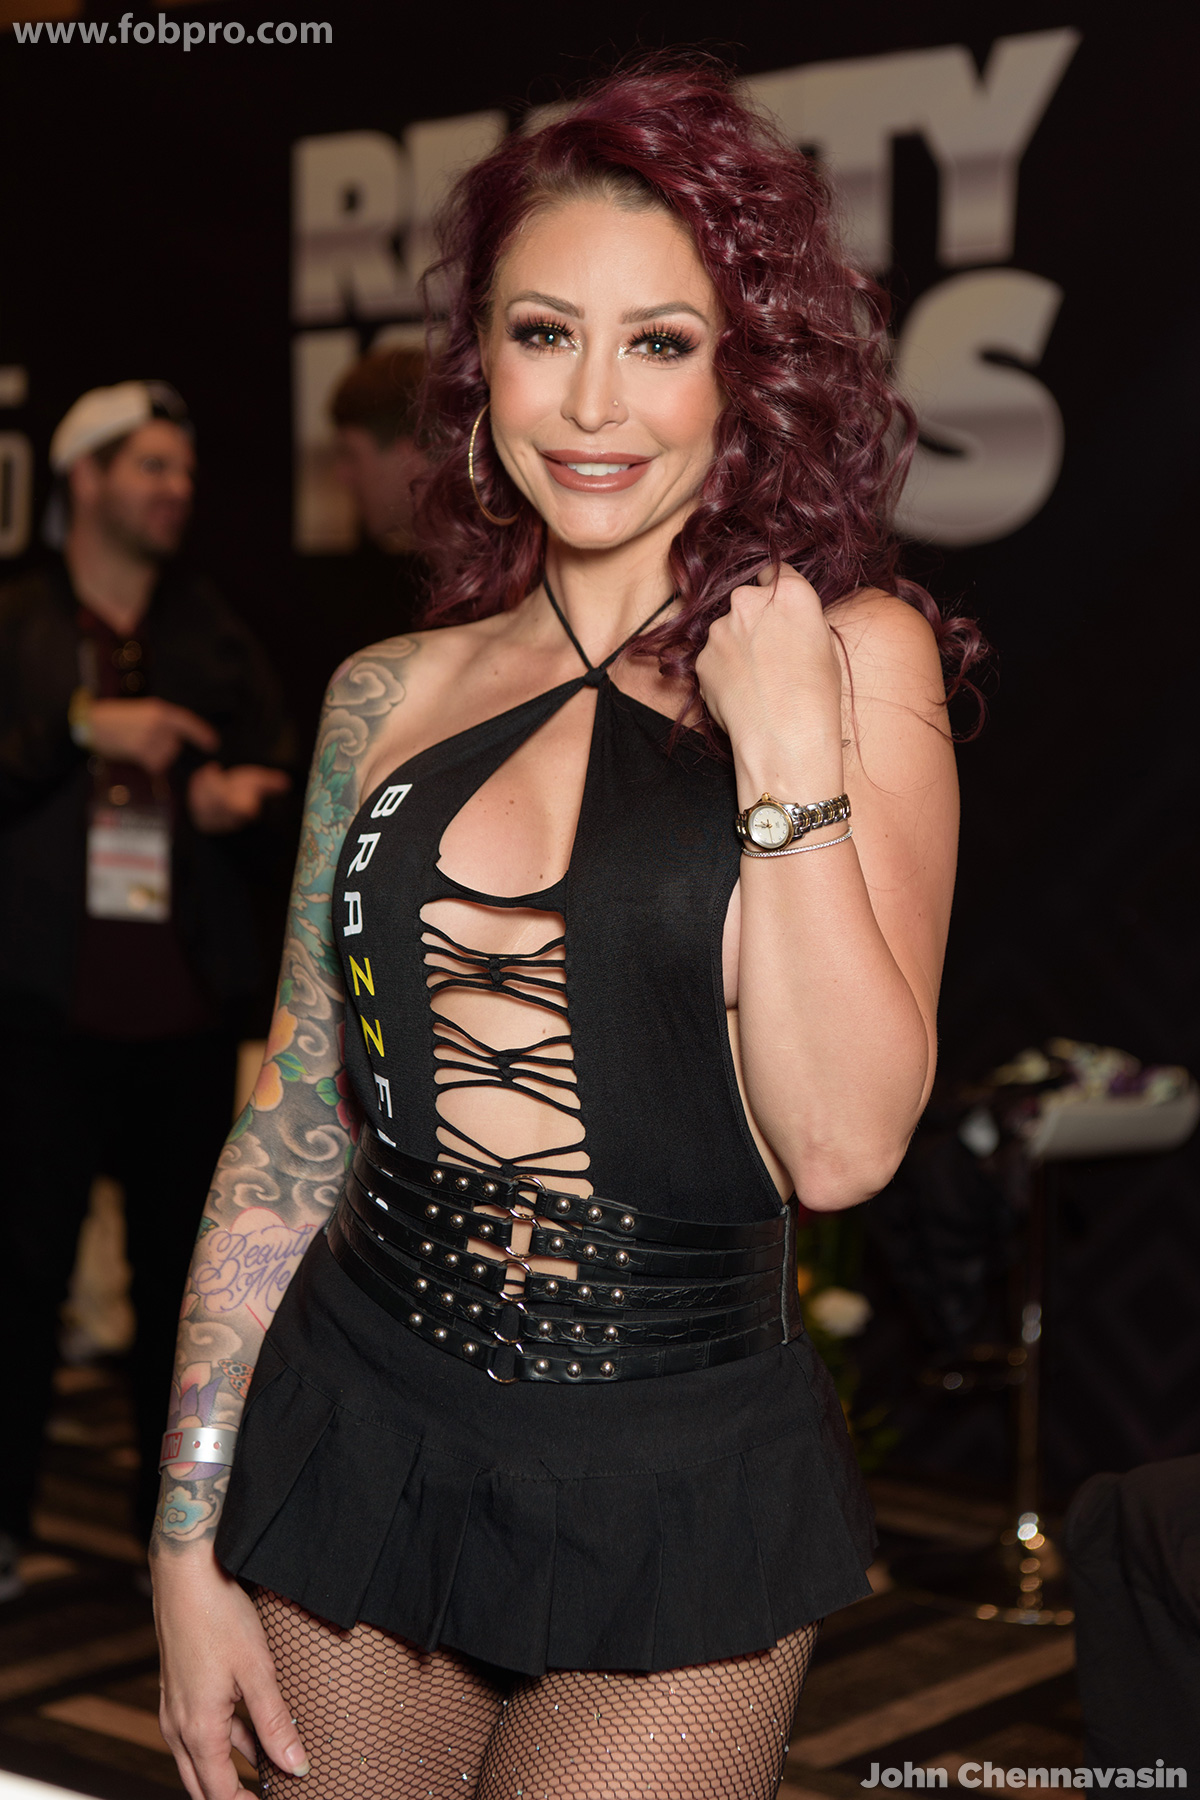 AVN Adult Entertainment Expo 2018 Day 3 (Page 3 of 24